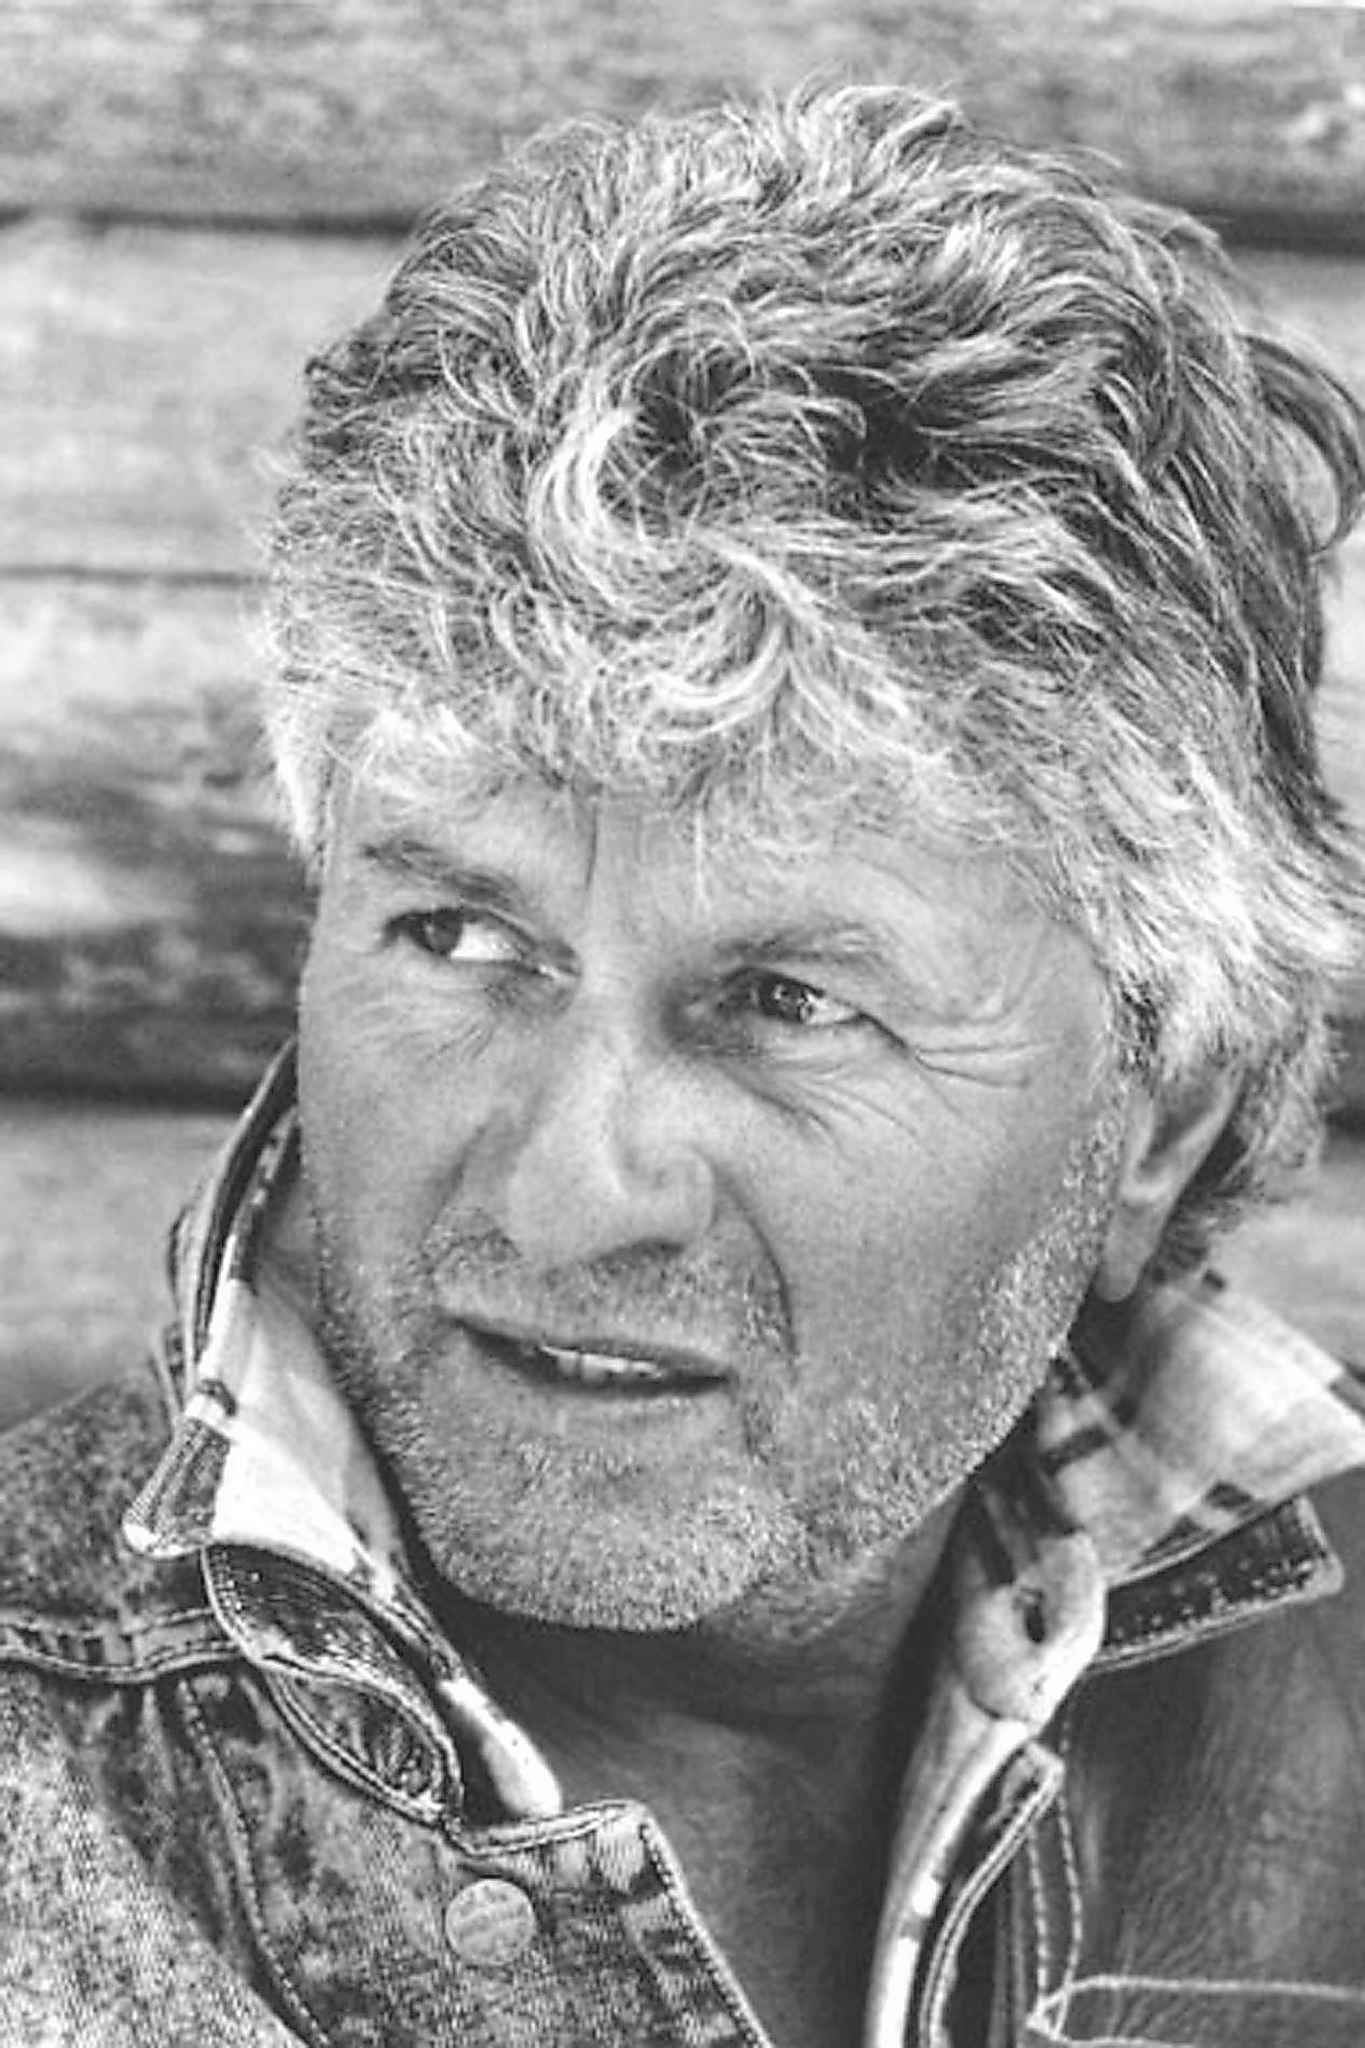 Terry Jacks (The Canadian Press files)